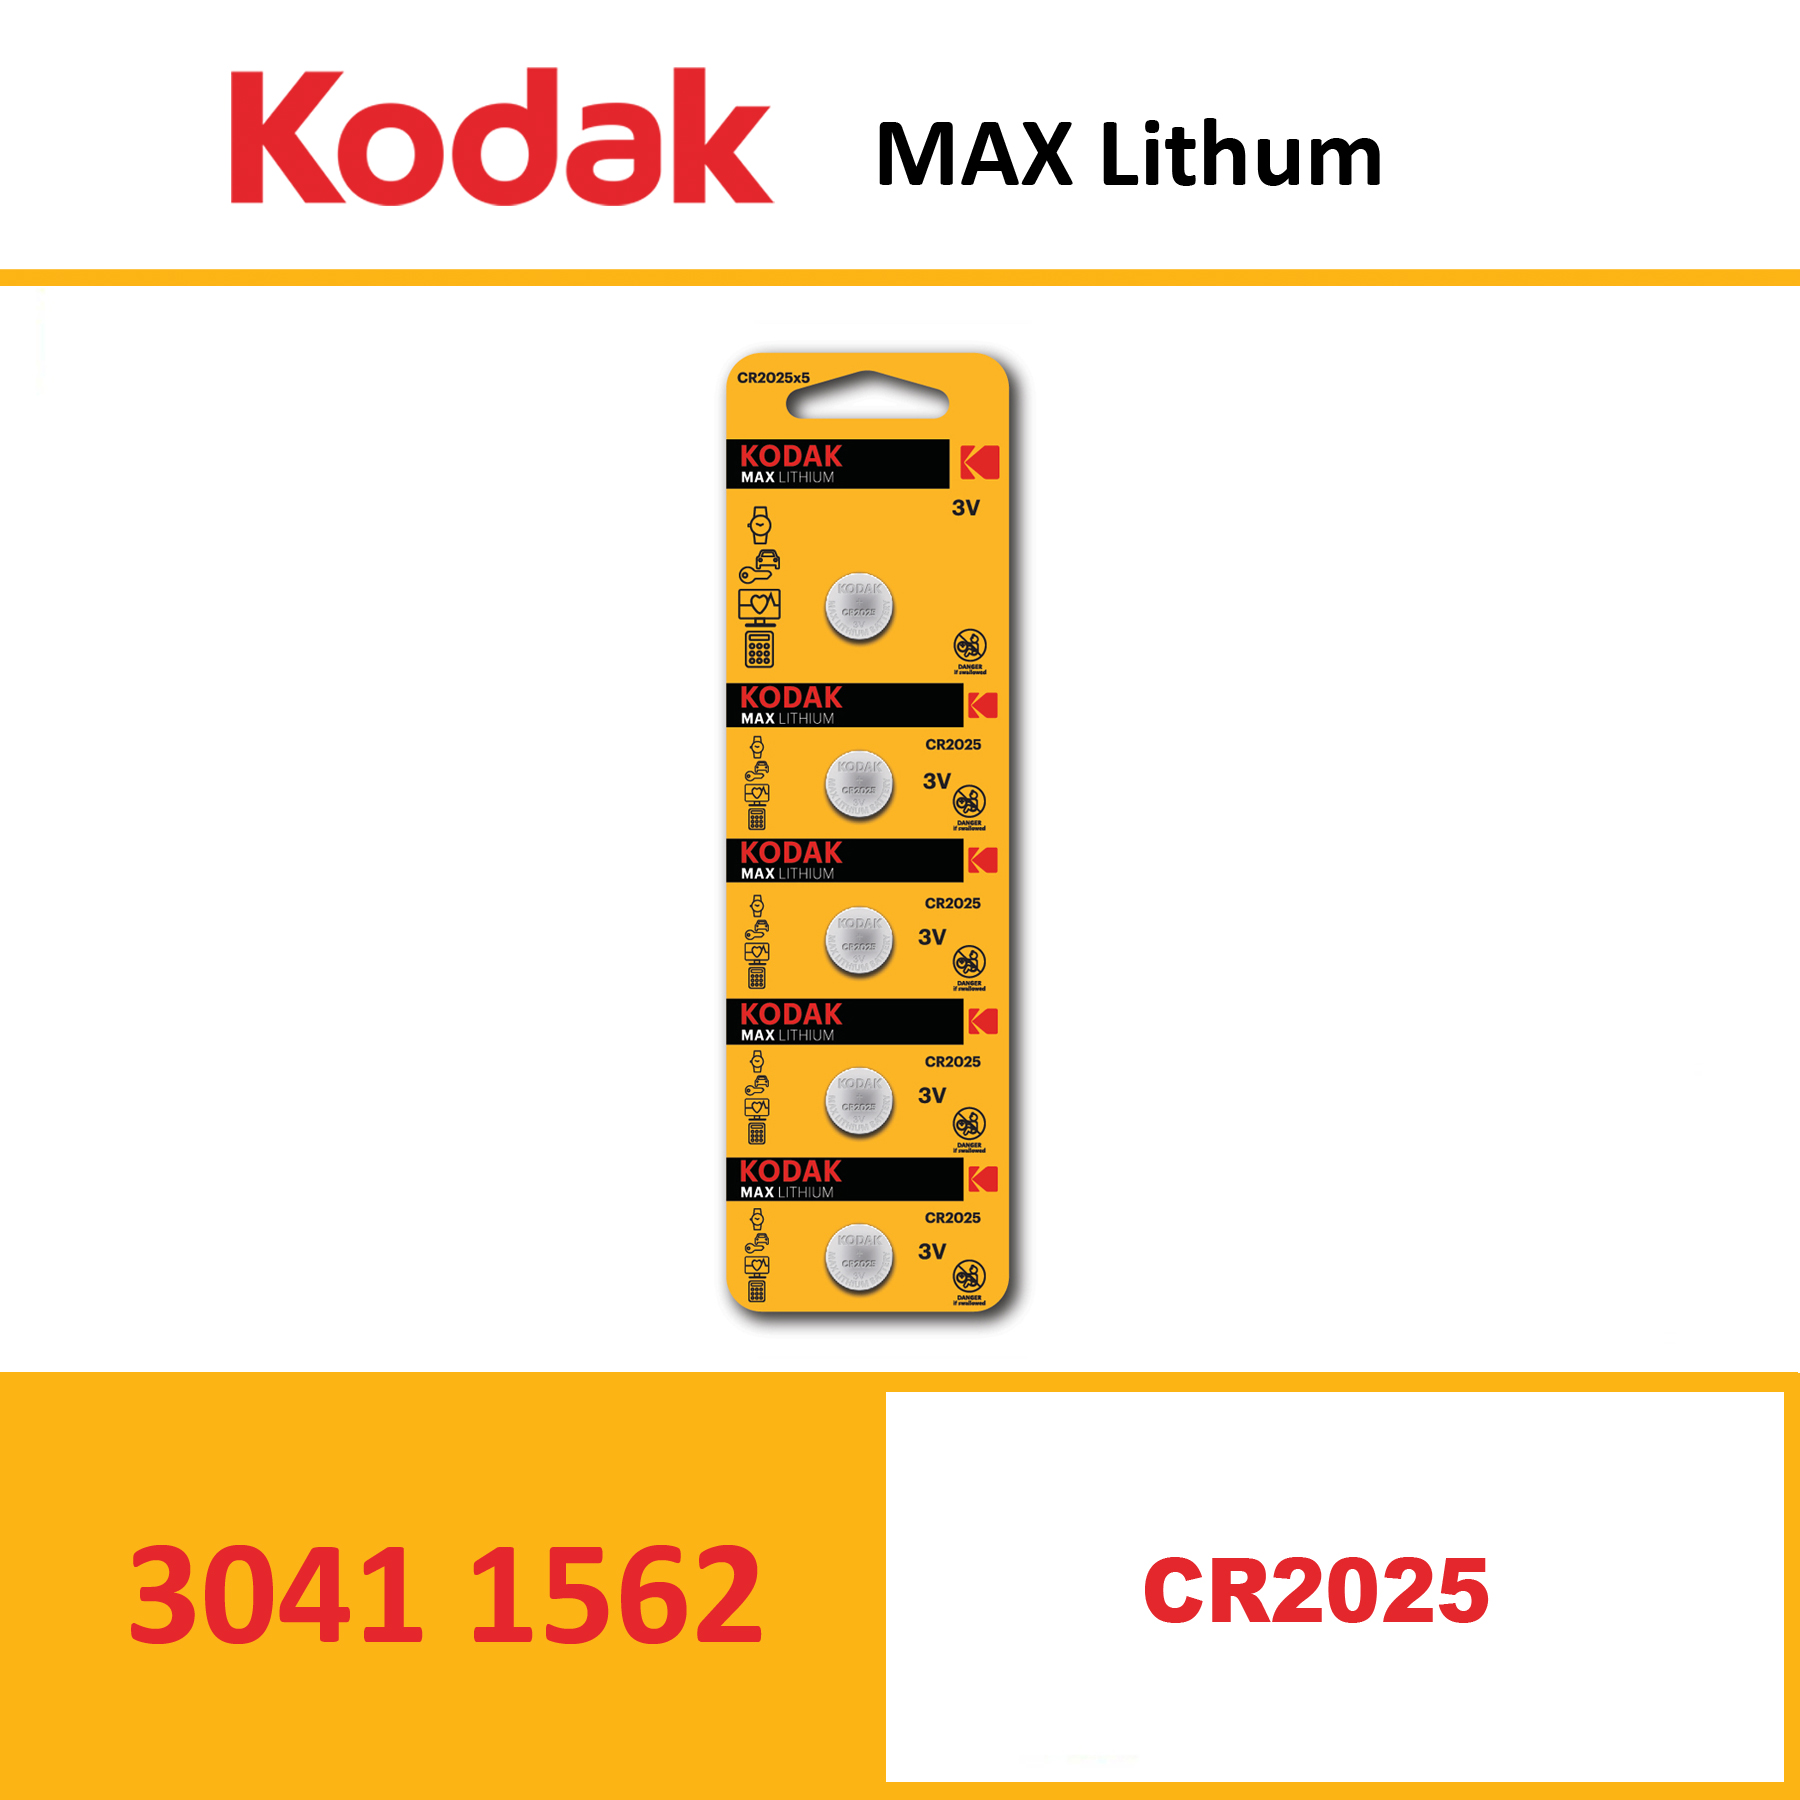 KODAK KCR2025 MAX Lithium coin cell Pack of 5 Piece